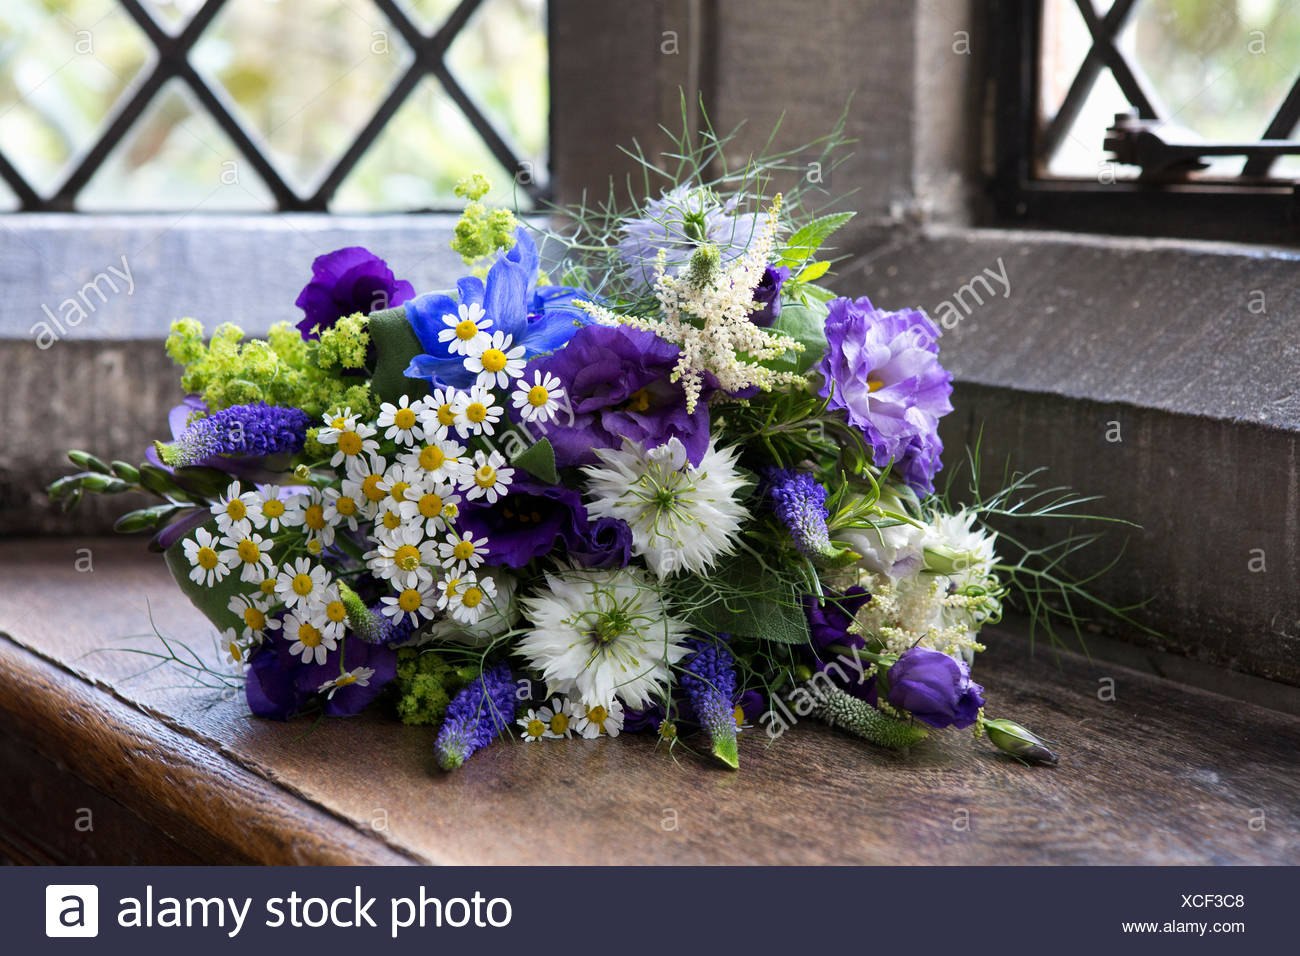 Close Up Of A Bouquet Of Blue And White Wedding Flowers Stock Photo